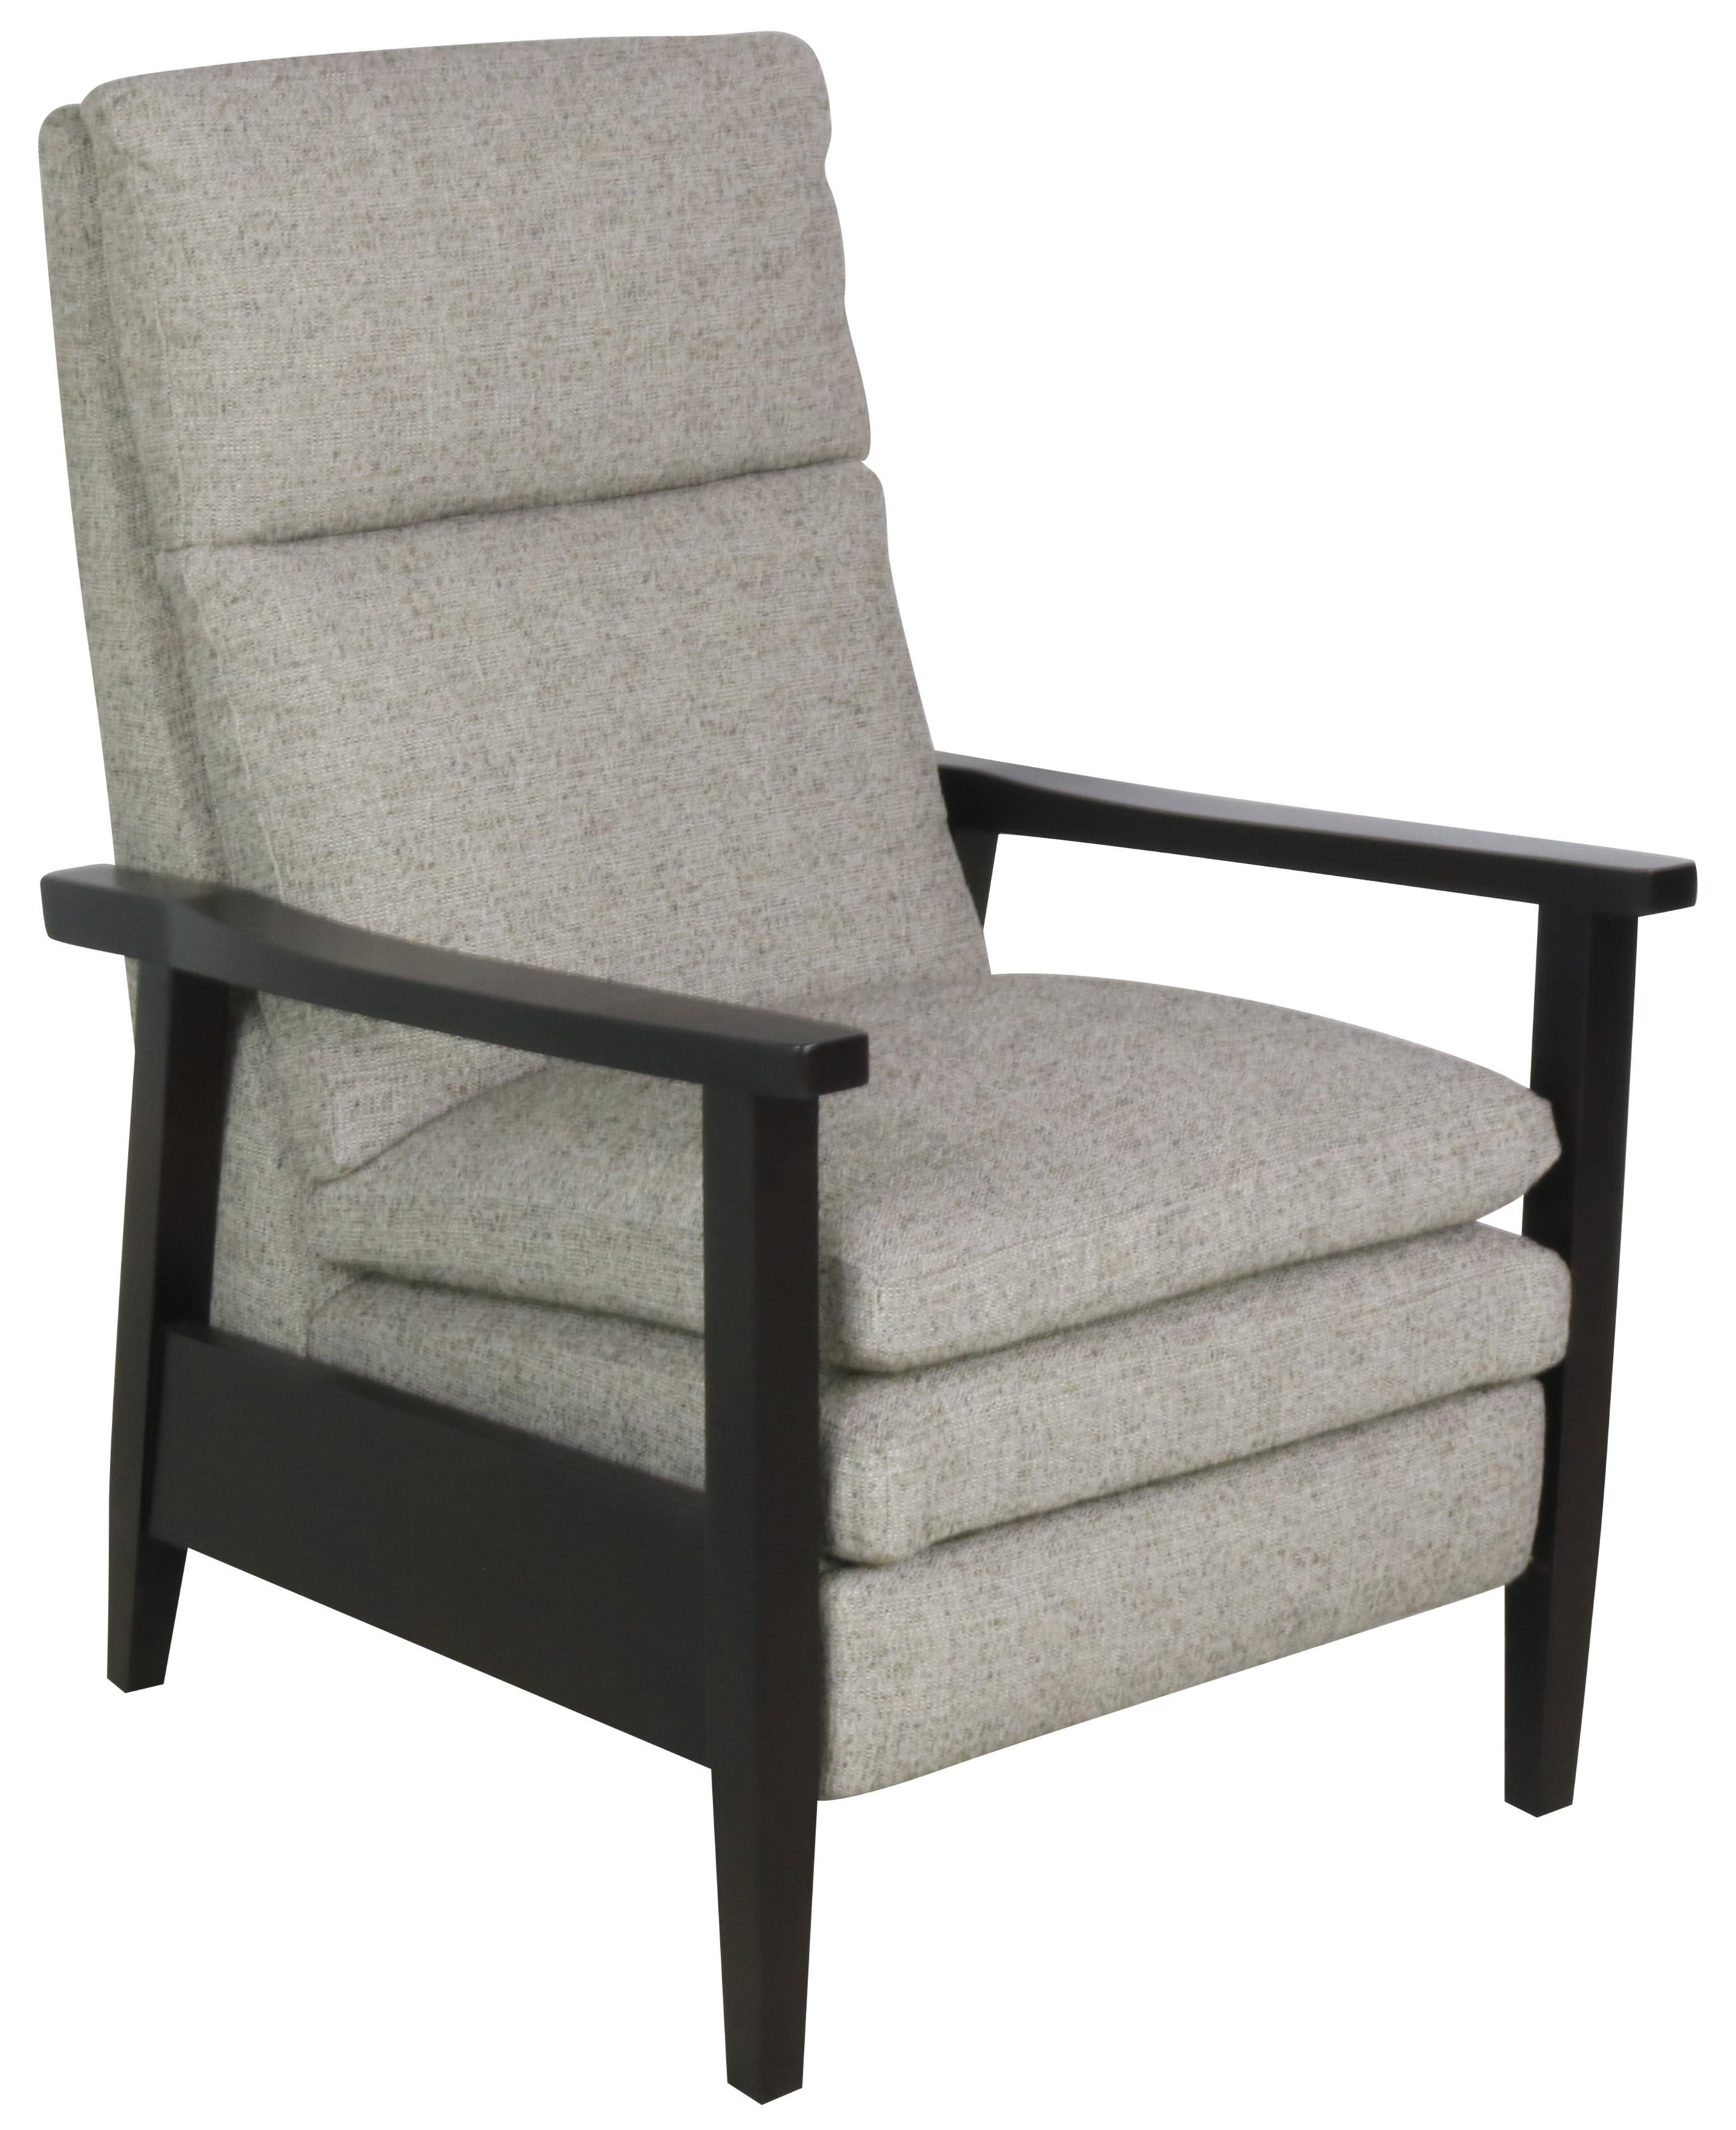 Upholstery Recliner by O'Connor Designs at Sprintz Furniture